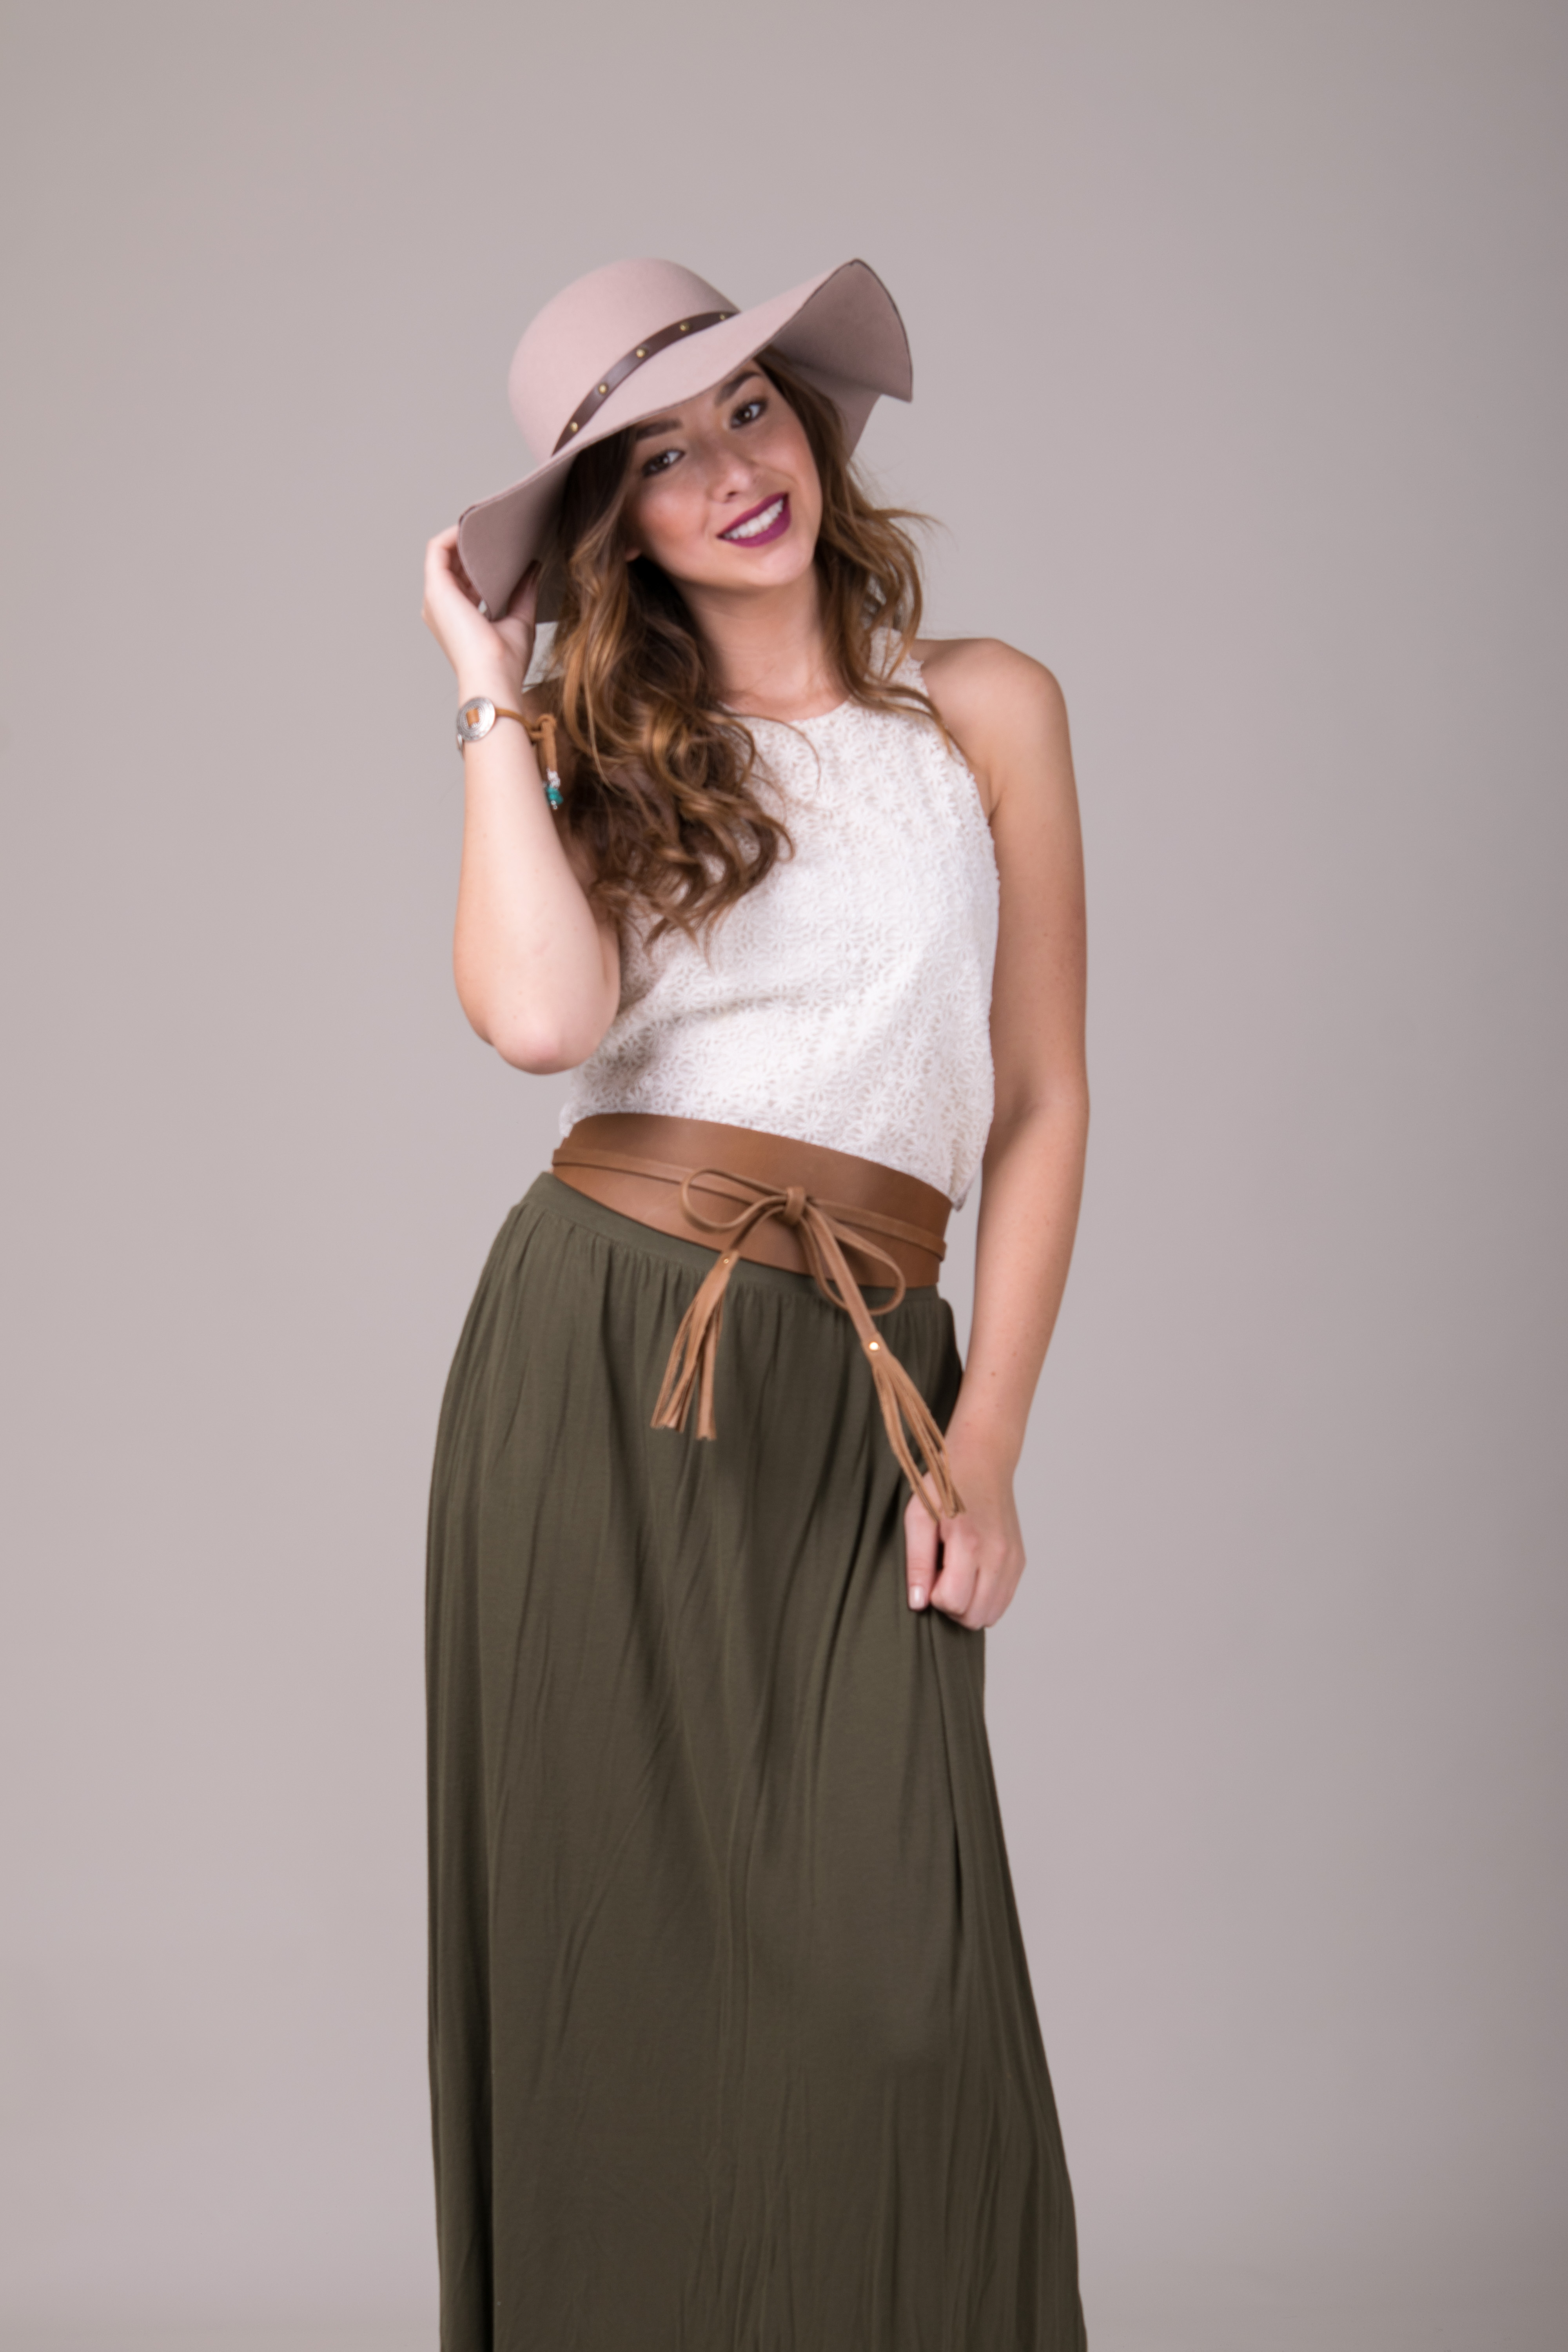 Floppy Hat + ADA Belt | 5 'Must-Try' Fall Styling Combos | pink hat | Green skirt | ADA Blog